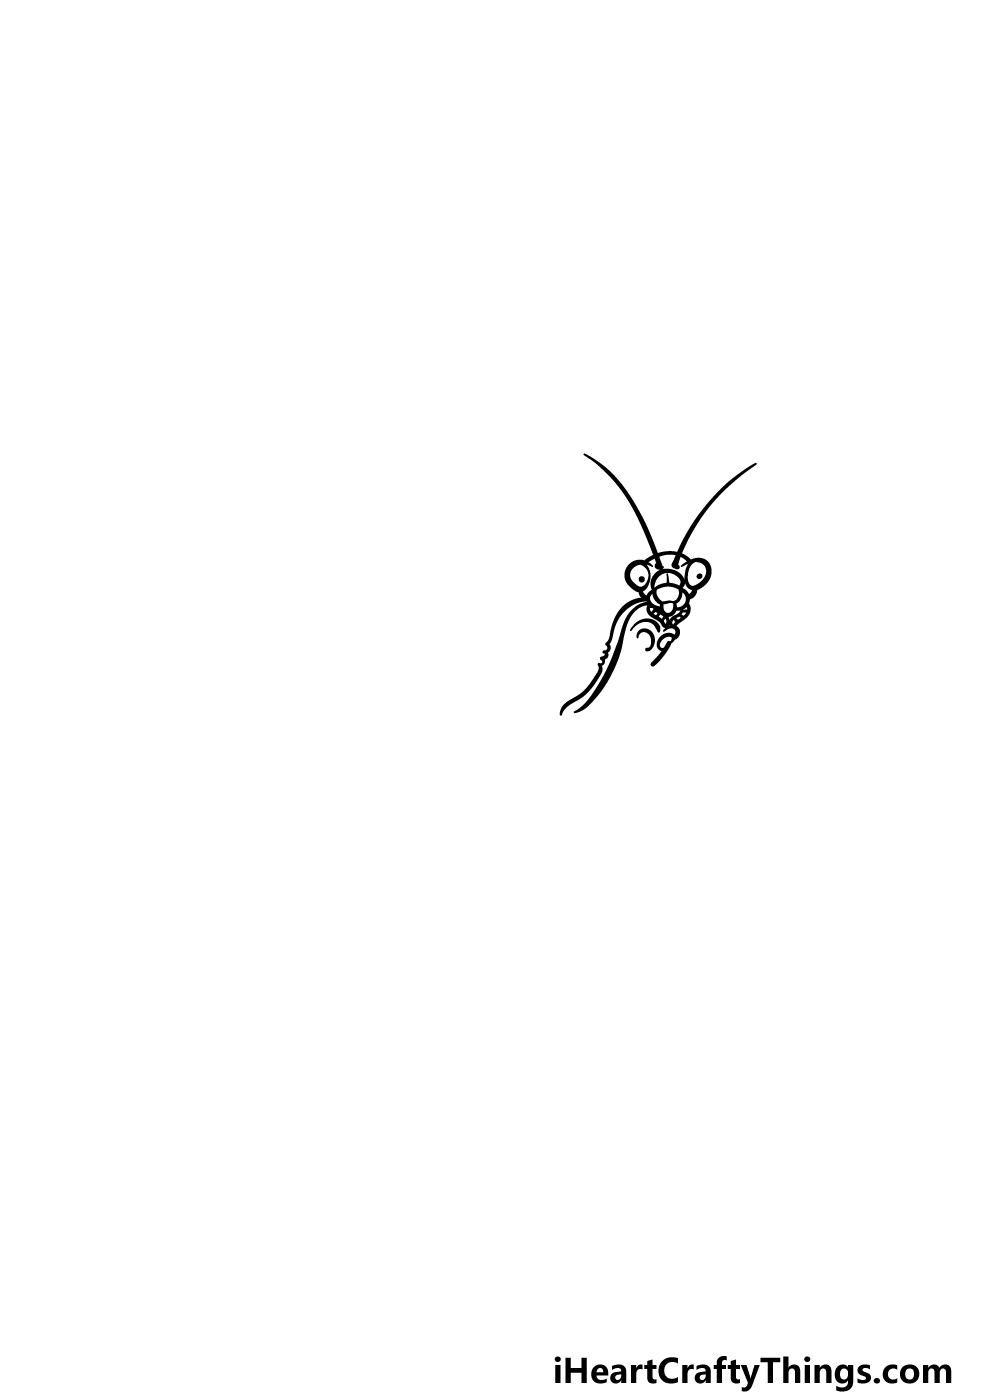 drawing an insect step 1